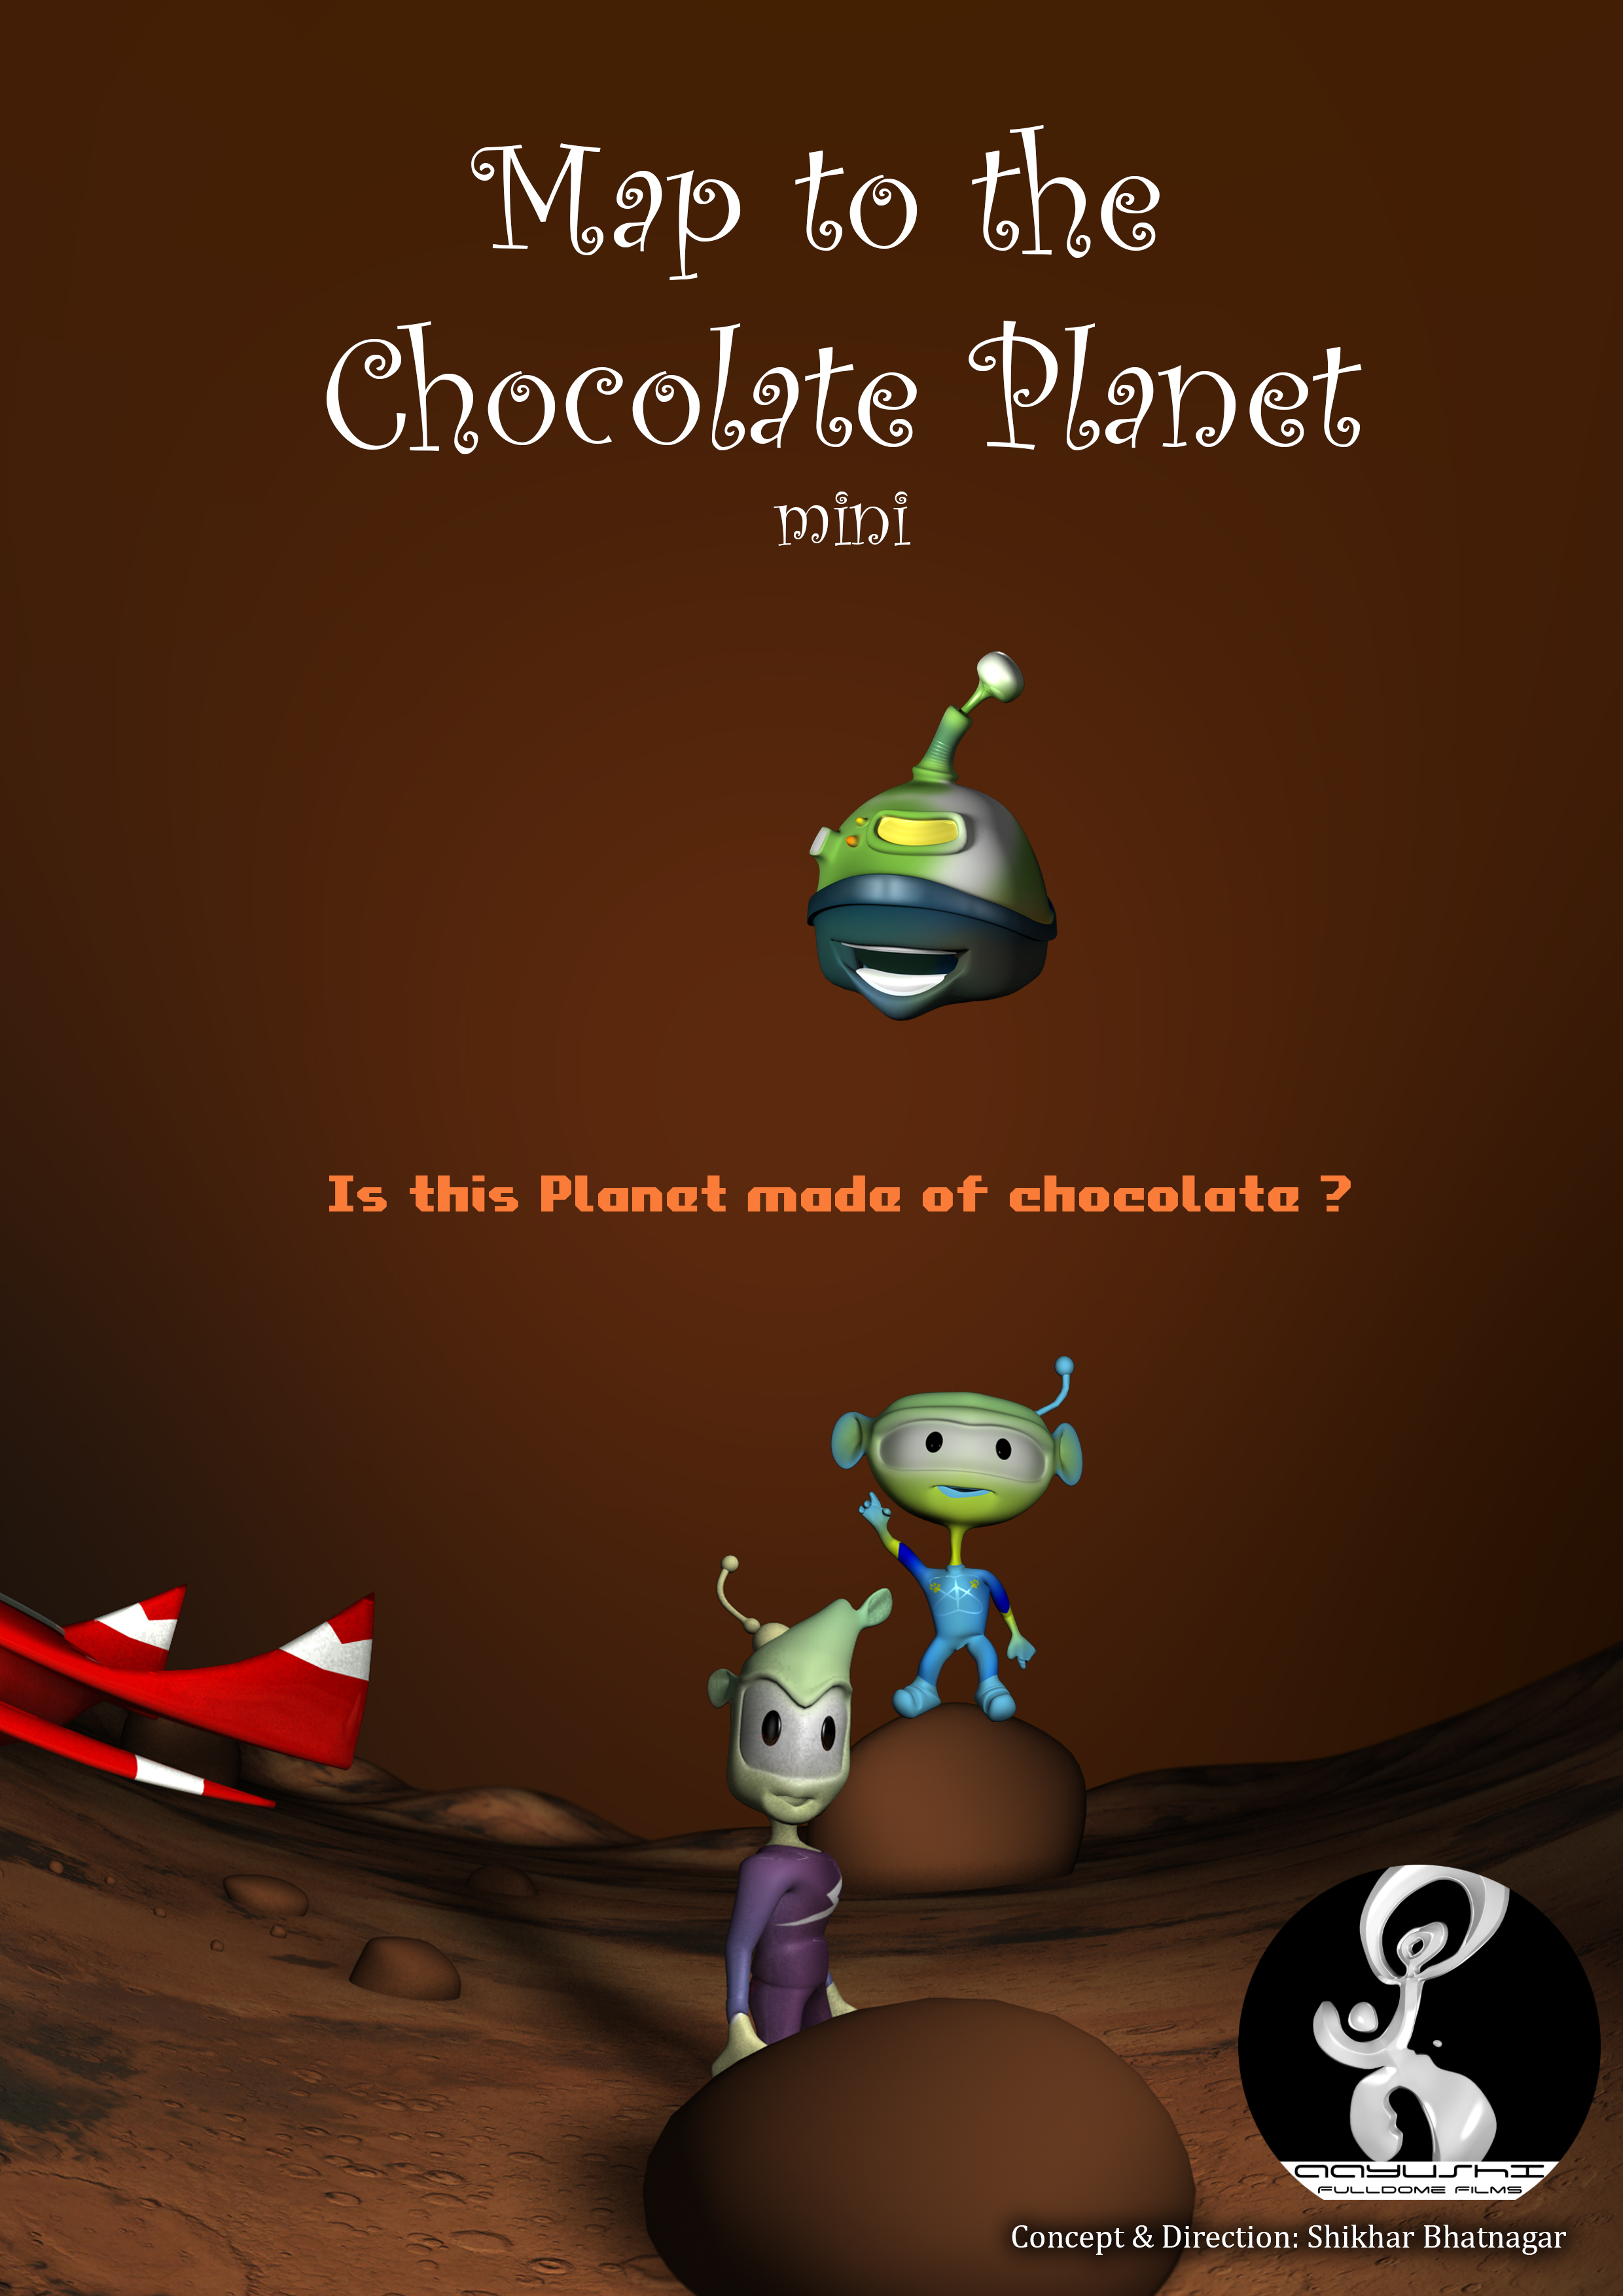 Map to the Chocolate Planet - mini | Fulldome Database - FDDB.org